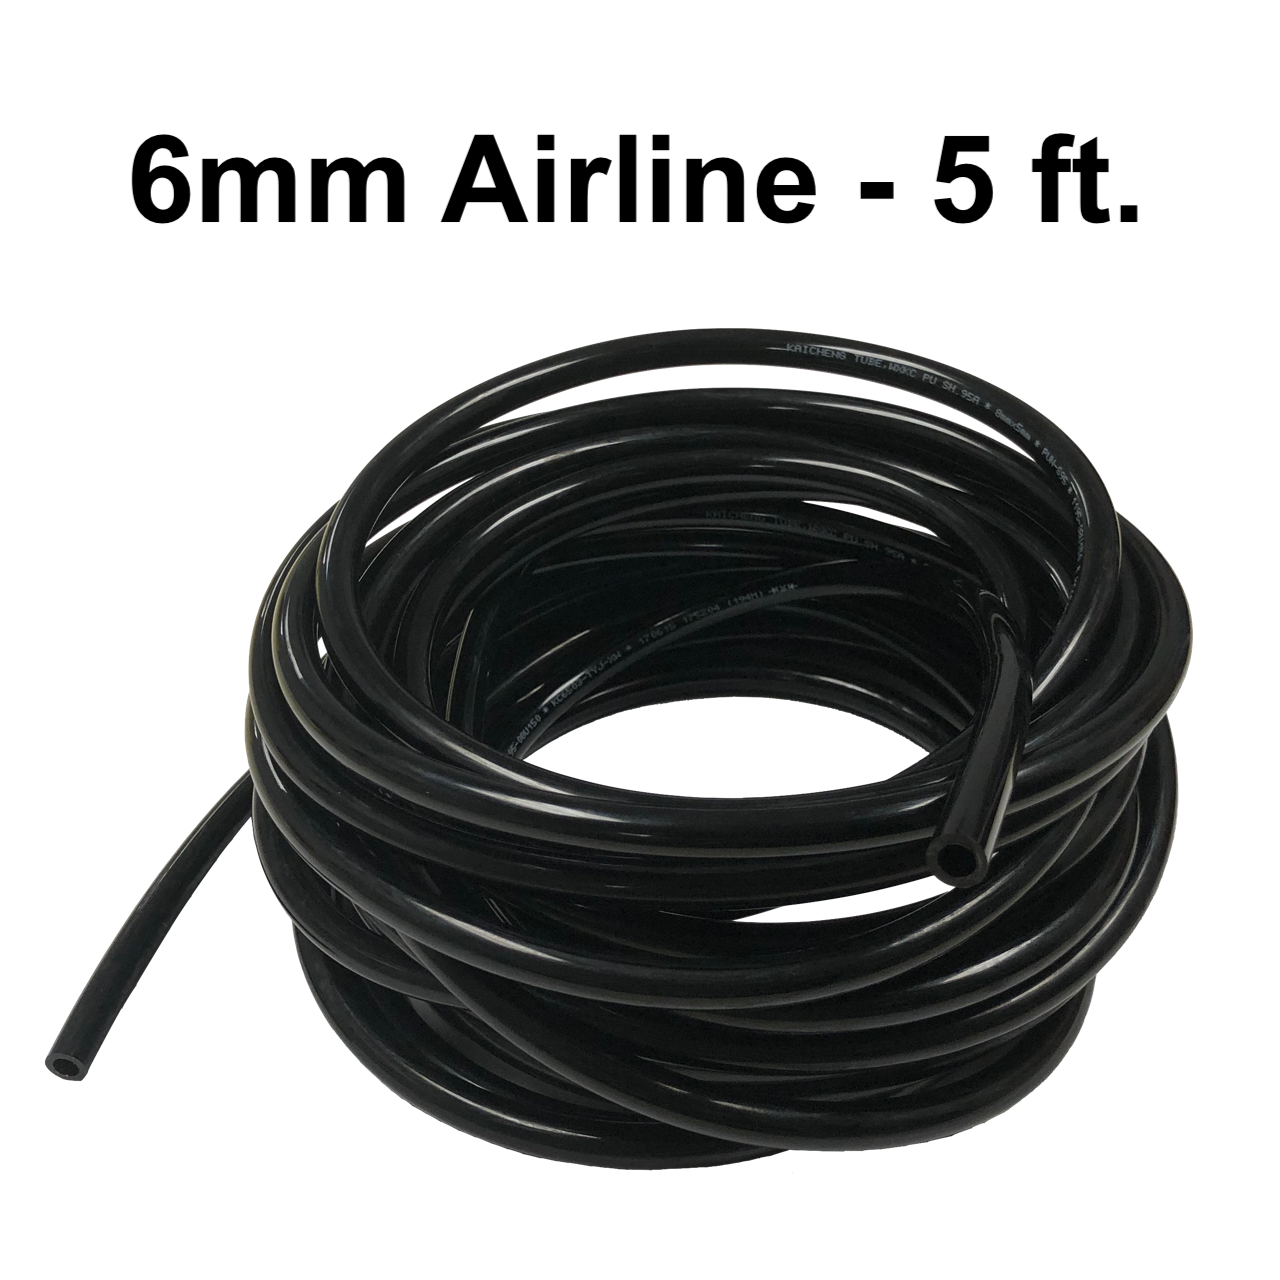 W-5509032 6mm Airline - 5 ft.